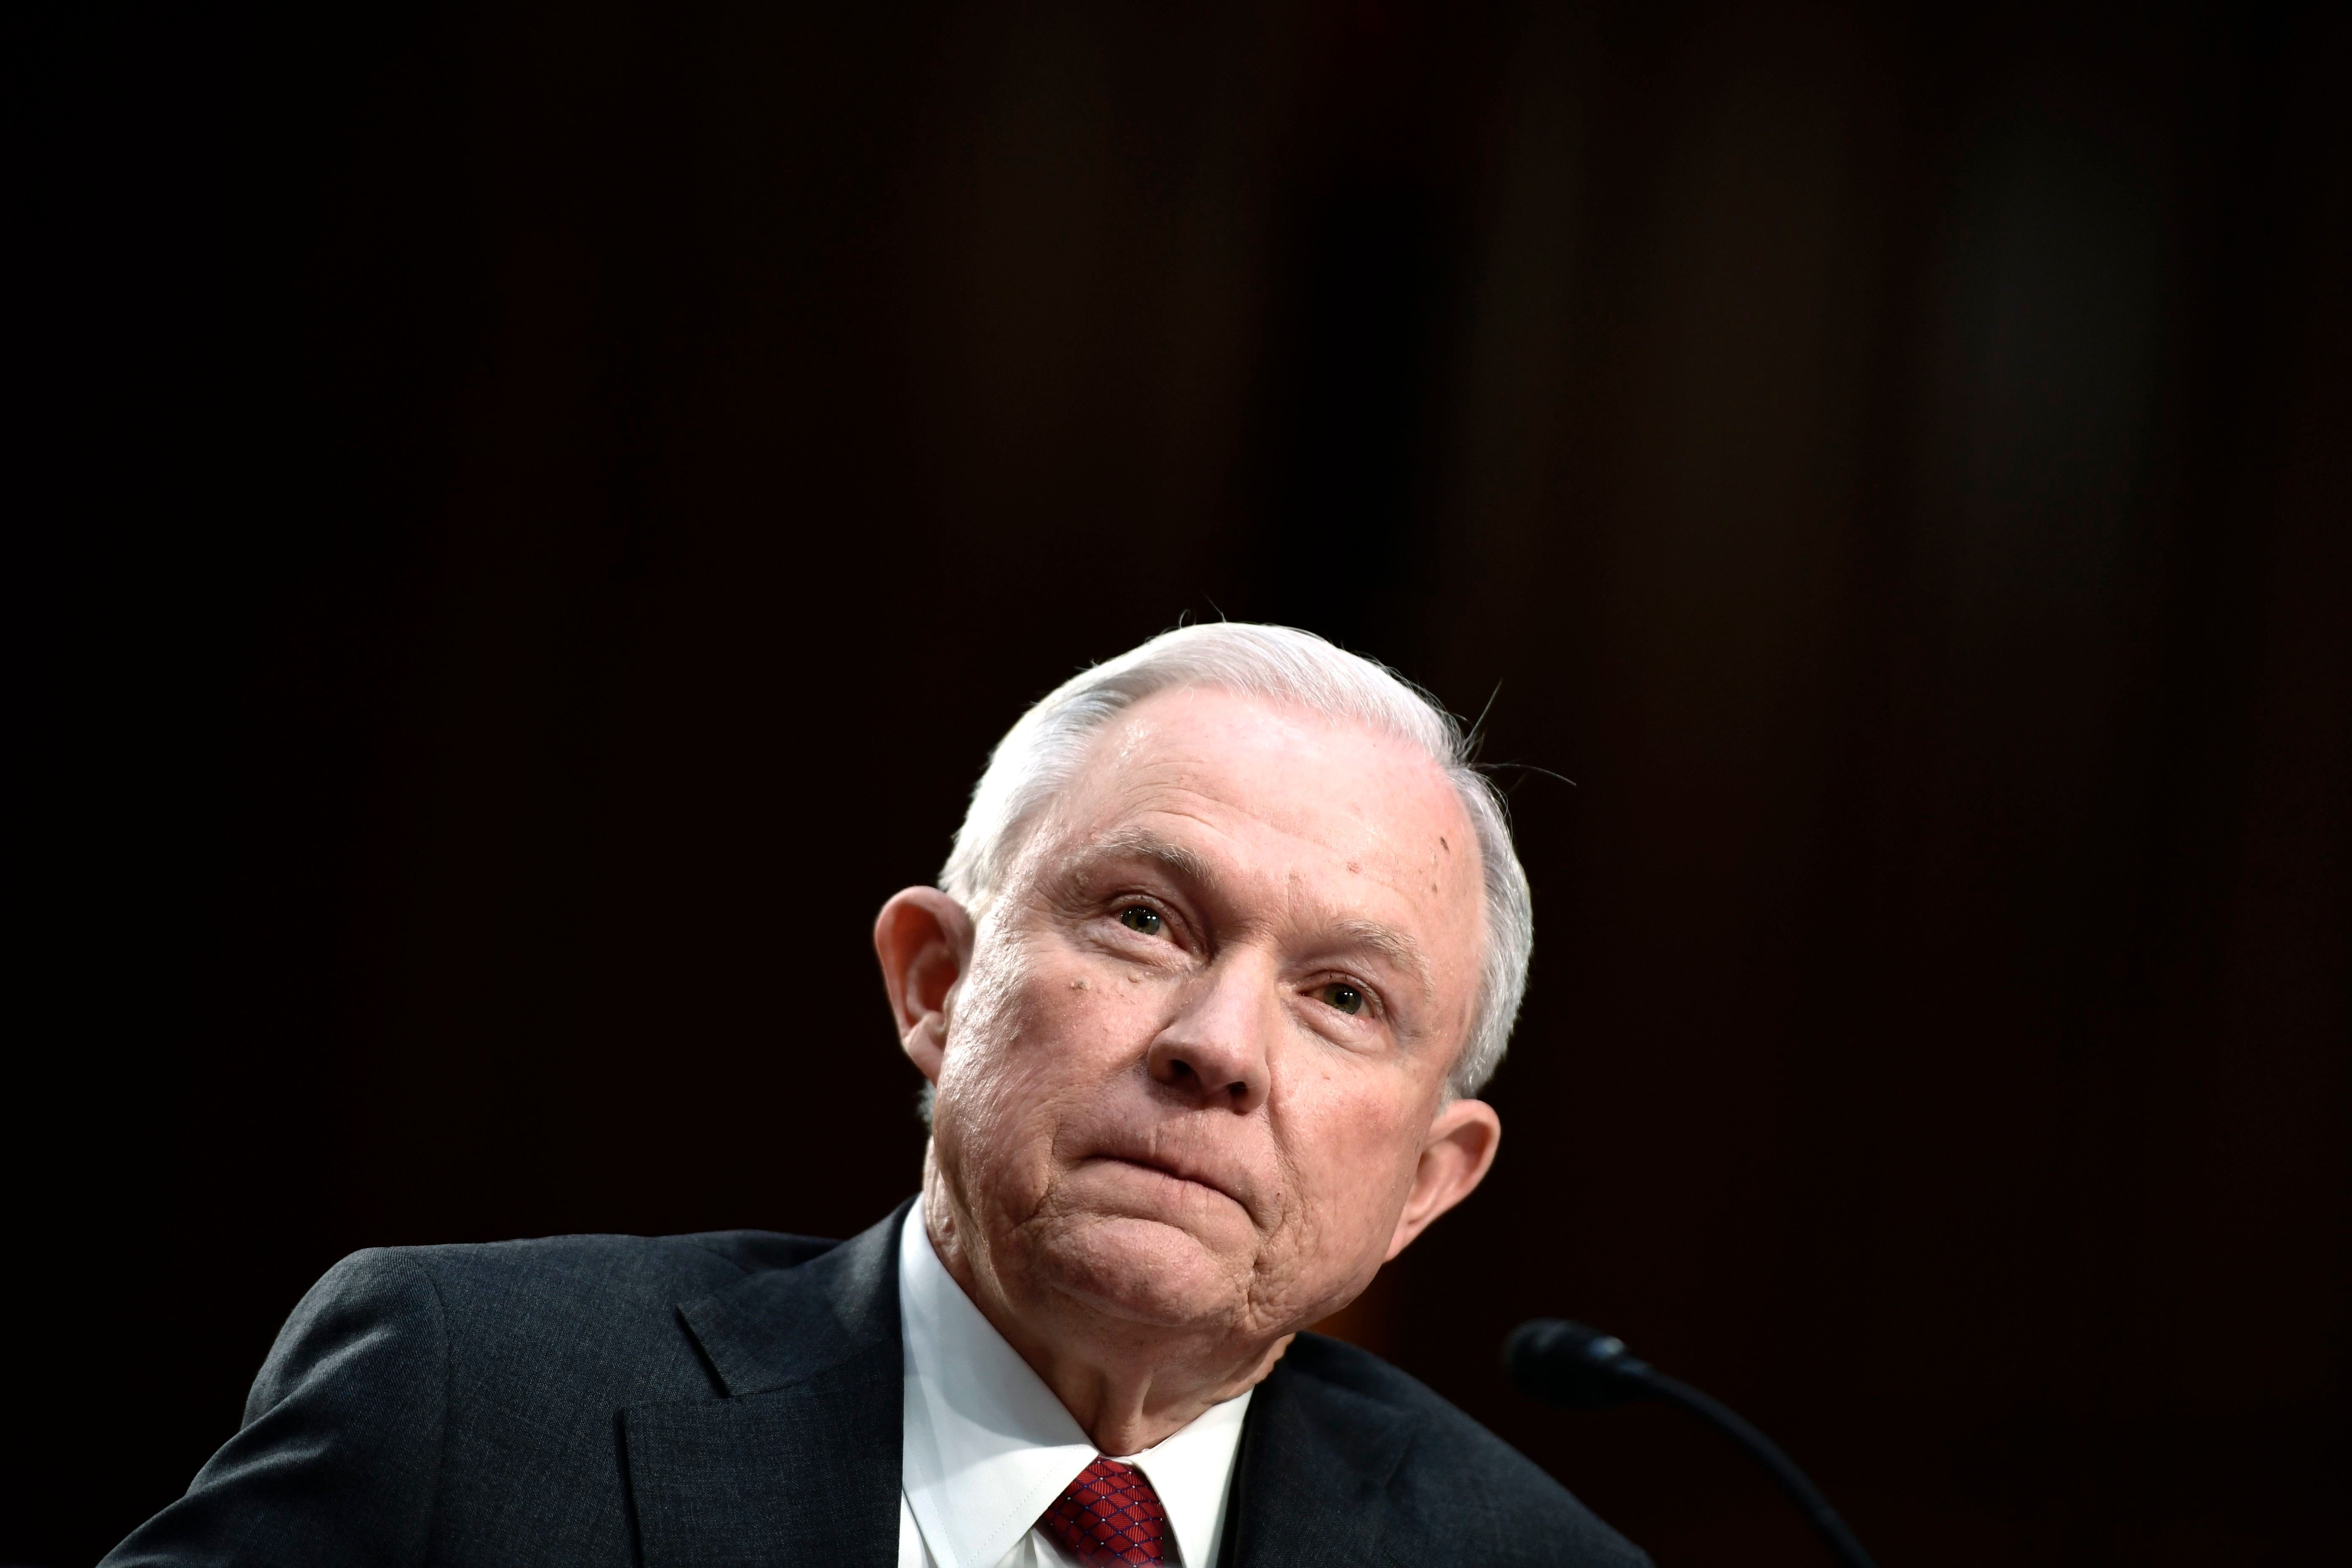 Attorney General Jeff Sessions testifies during a US Senate Select Committee on Intelligence hearing on Capitol Hill in Washington, DC, June 13, 2017. US Attorney General Jeff Sessions vehemently denied Tuesday that he colluded with an alleged Russian bid to tilt the 2016 presidential election in Donald Trump's favor. / AFP PHOTO / Brendan Smialowski        (Photo credit should read BRENDAN SMIALOWSKI/AFP/Getty Images)